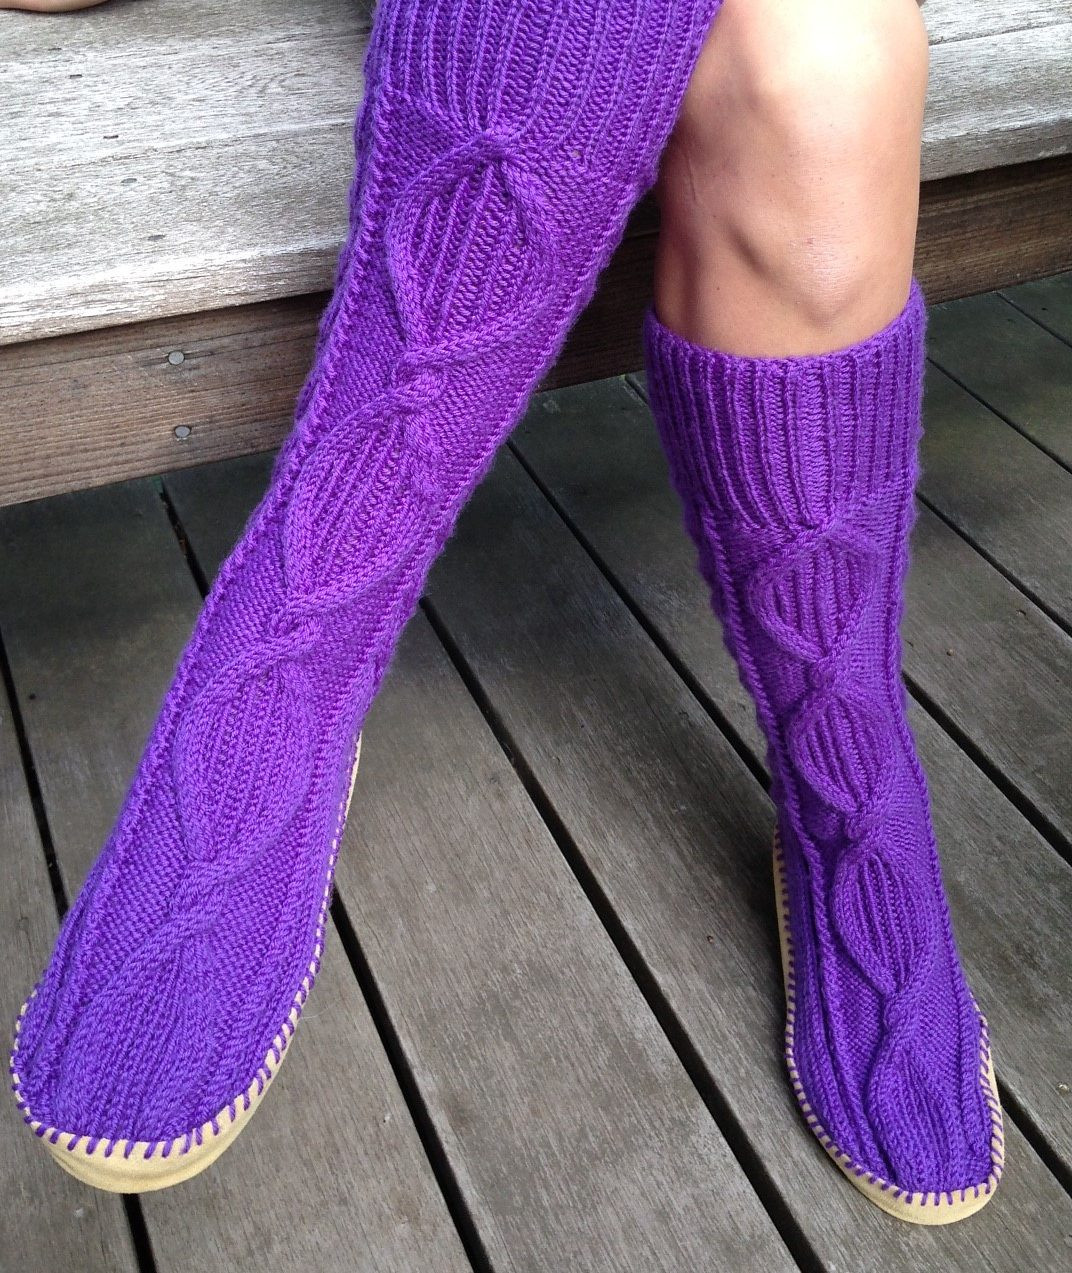 Sock Knitting Pattern Elegant Slipper socks and Boots Knitting Patterns Of Unique 41 Photos sock Knitting Pattern